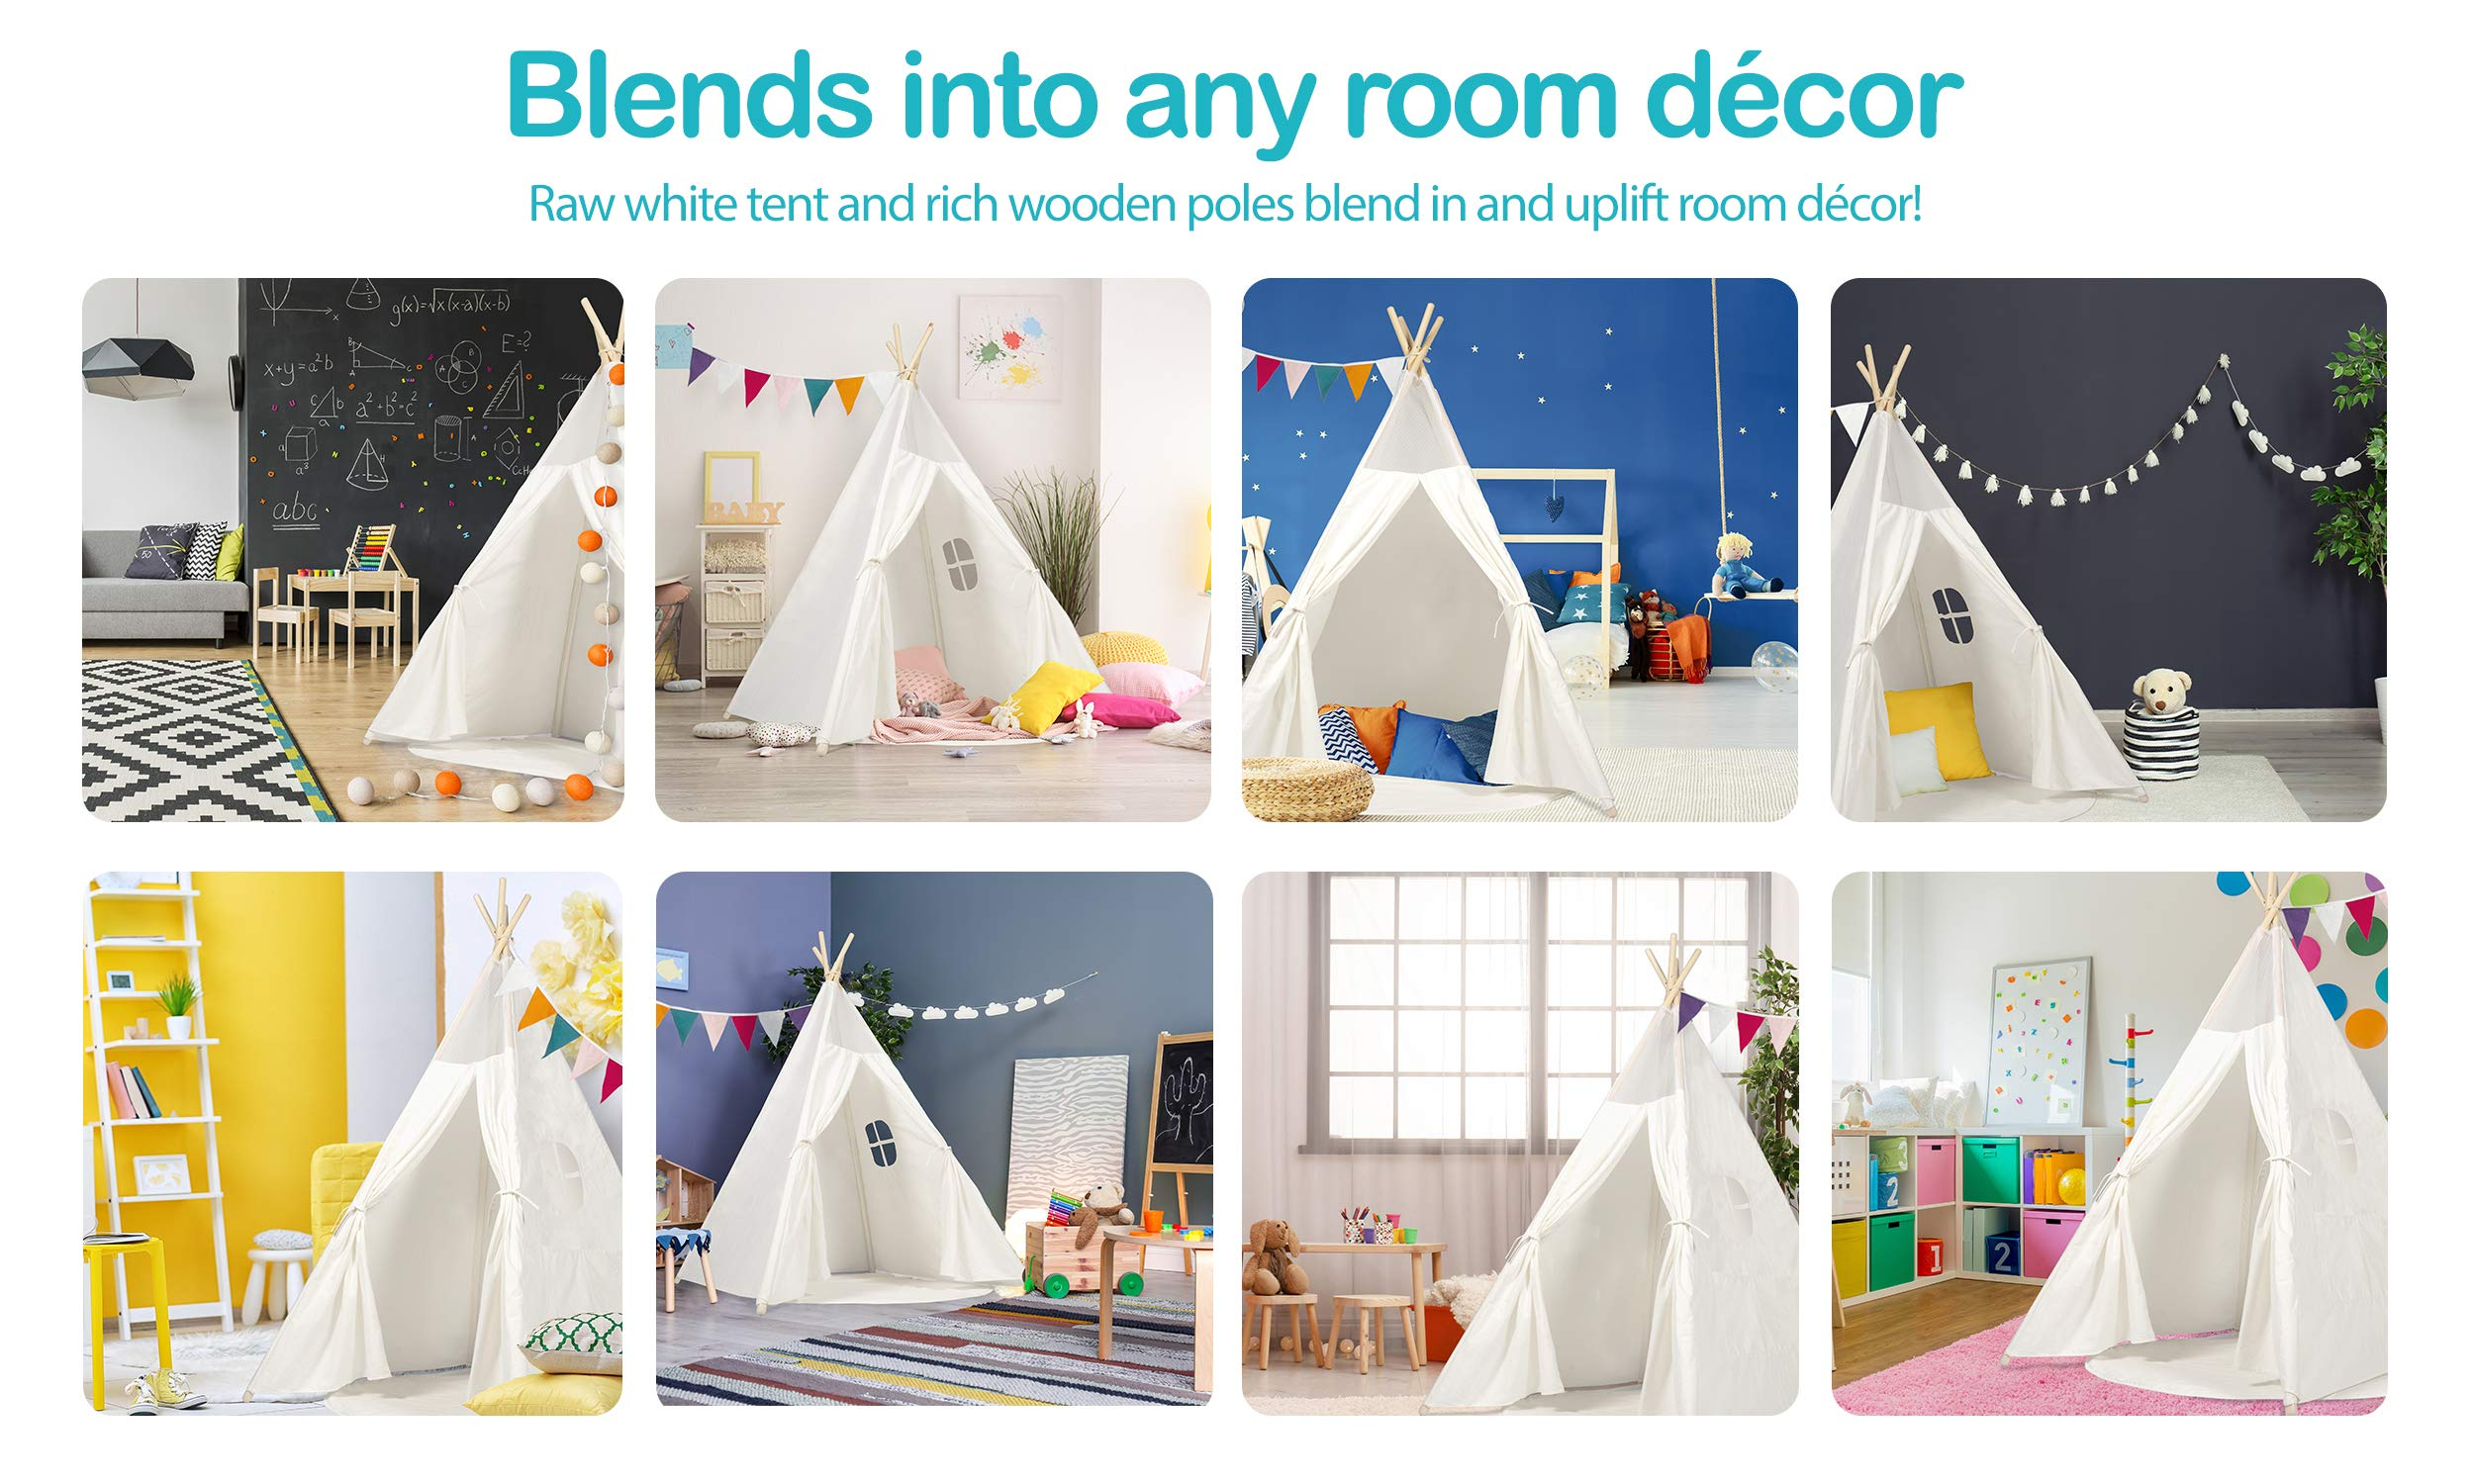 Kids Teepee Tent Children Play Tent 5 ft Raw White Cotton Canvas Four Wooden Poles Thick Cushion Mat LED Light Banner Carry Case Indoor Outdoor Playhouse for Girls and Boys Childrens Room Decor by flybold (Image #8)